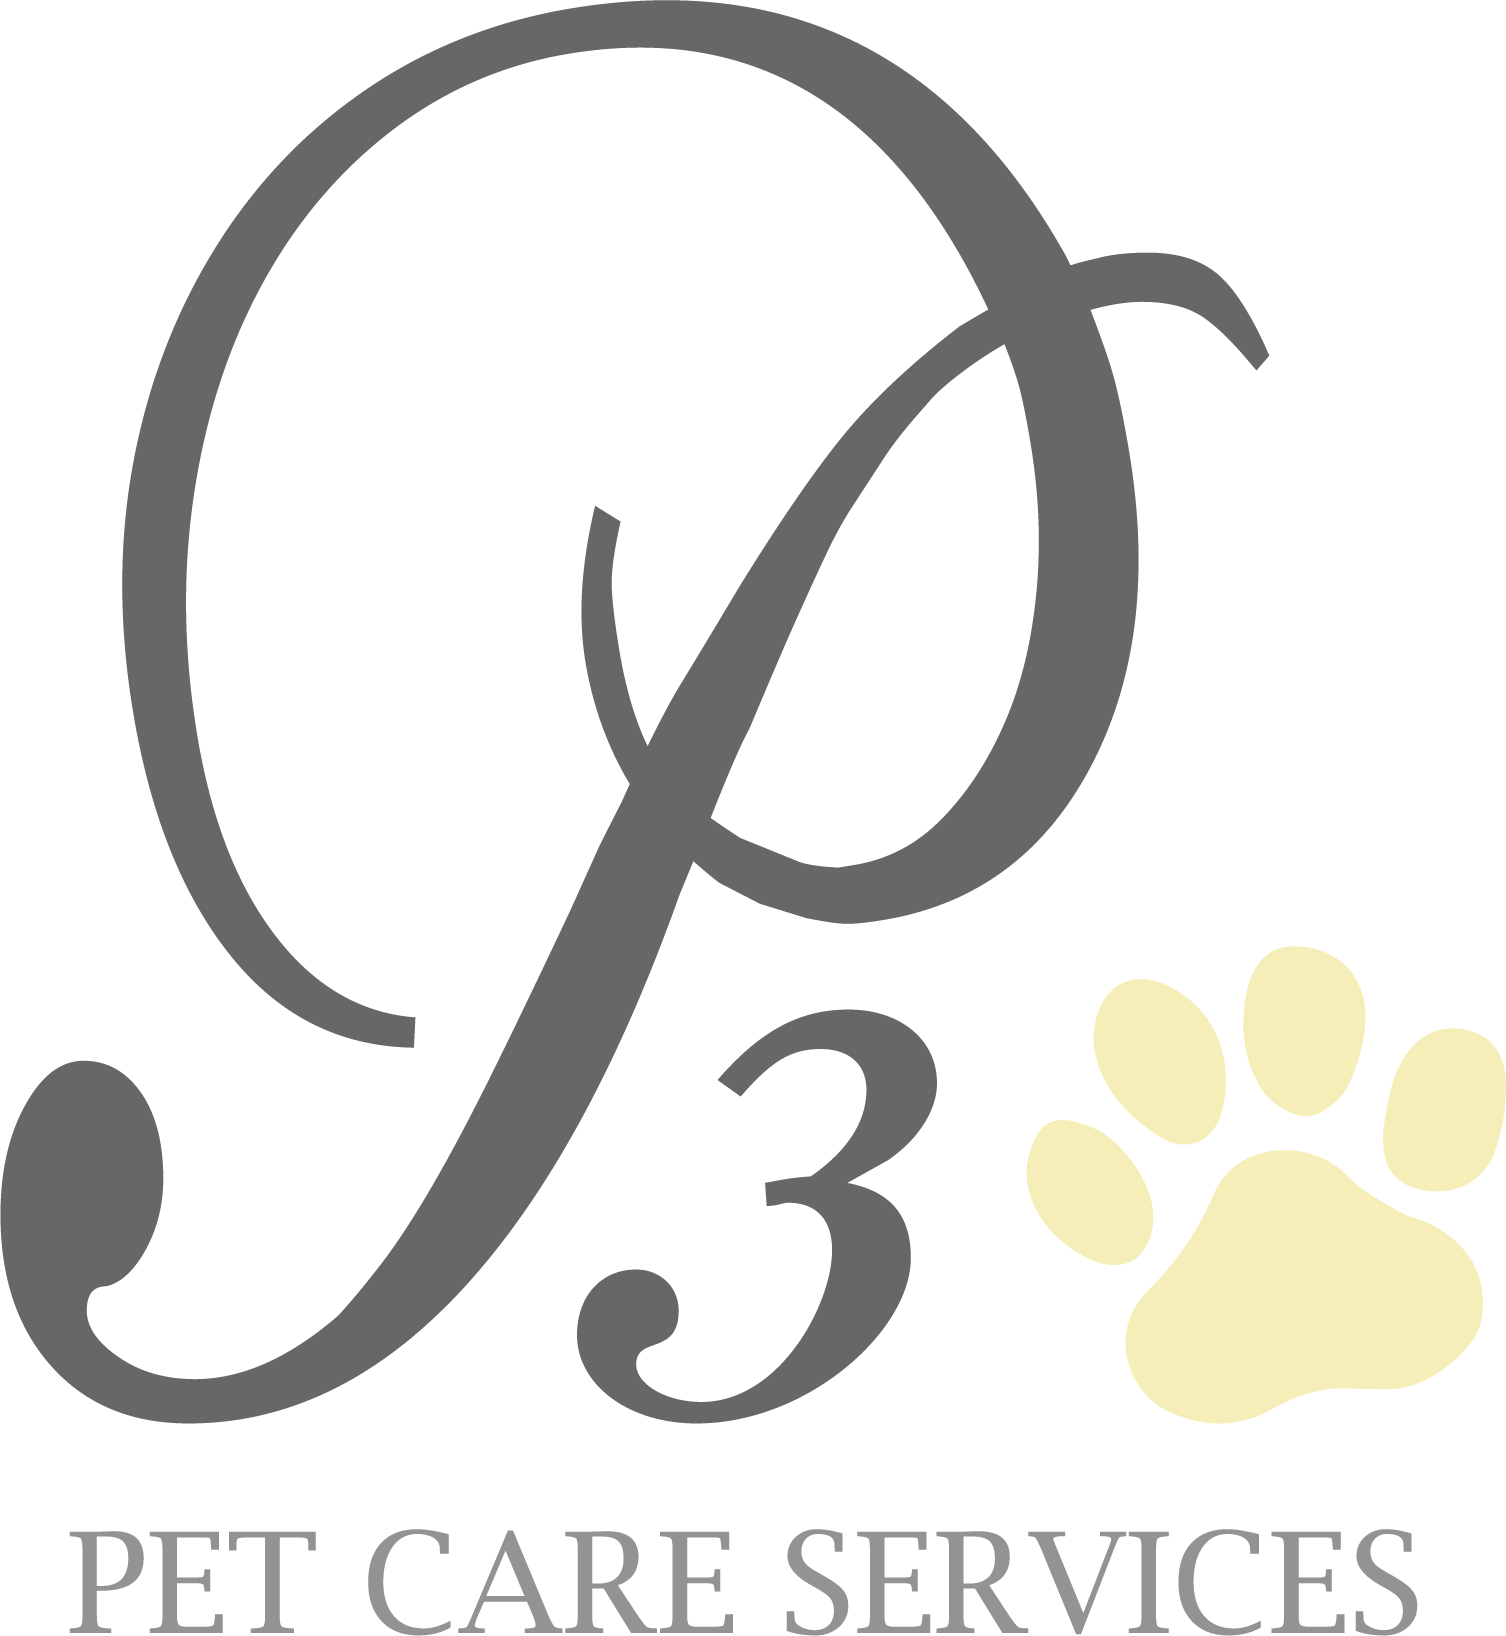 P3 Pet Care Services